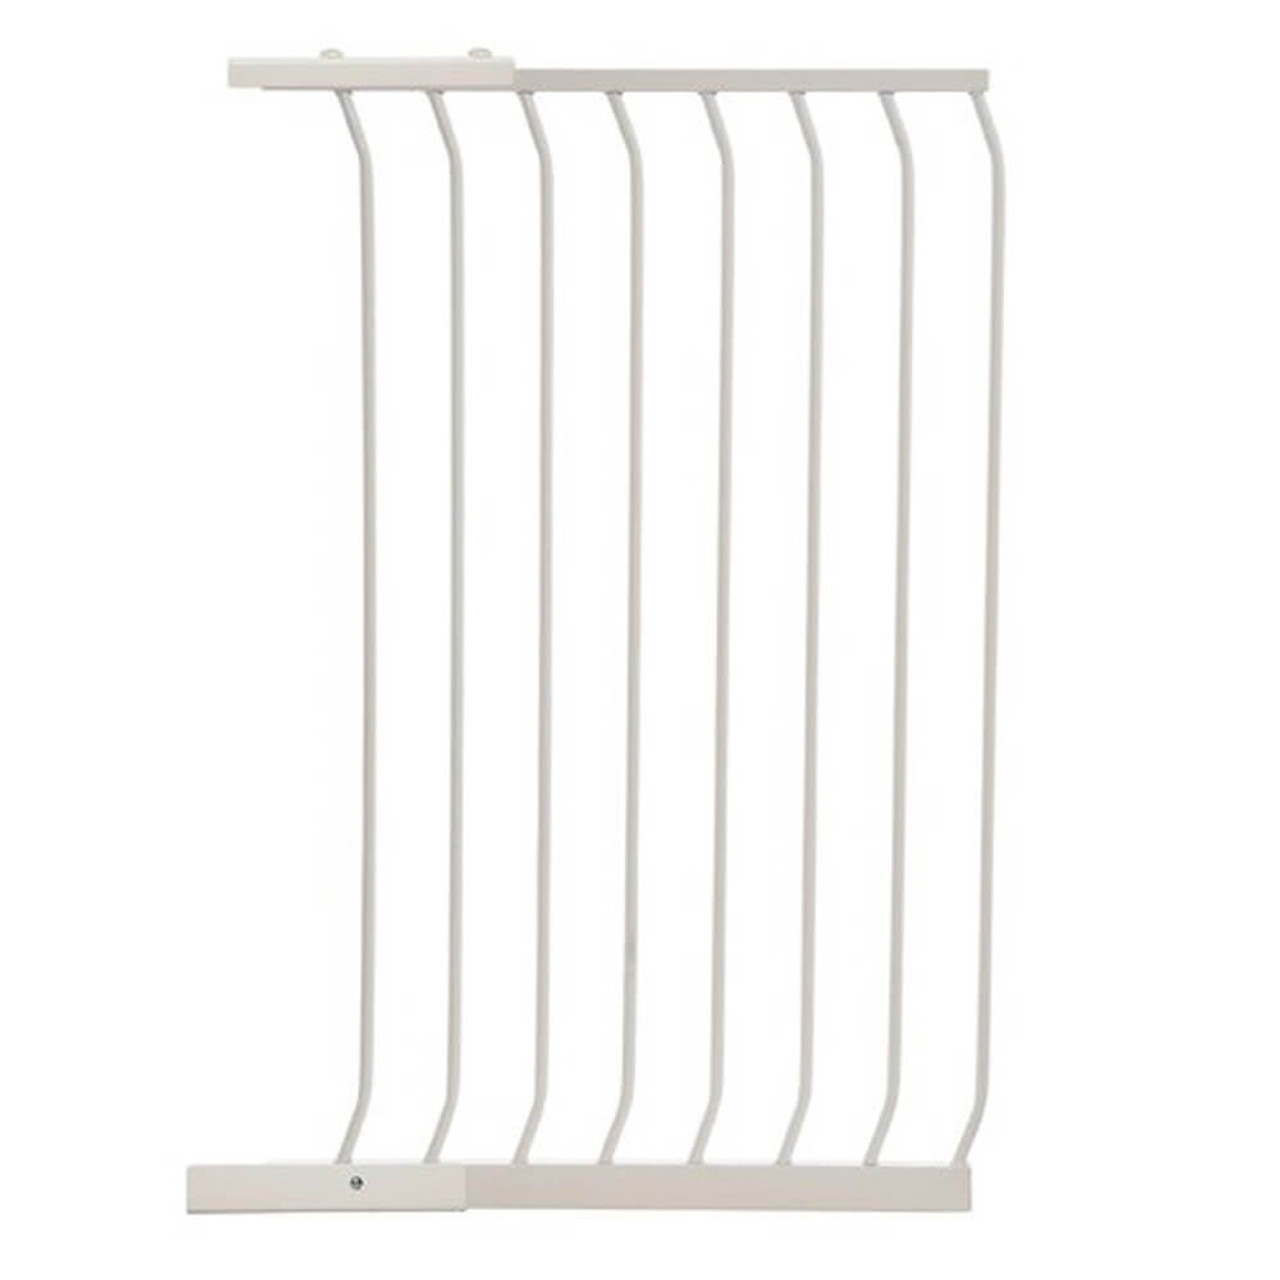 Dreambaby Chelsea 54cm Tall Gate Extension F843 (old packaging) at Baby Barn Discounts Dreambaby Chelsea Tall Gates are 1M high provide greater security and peace of mind for busy parents.